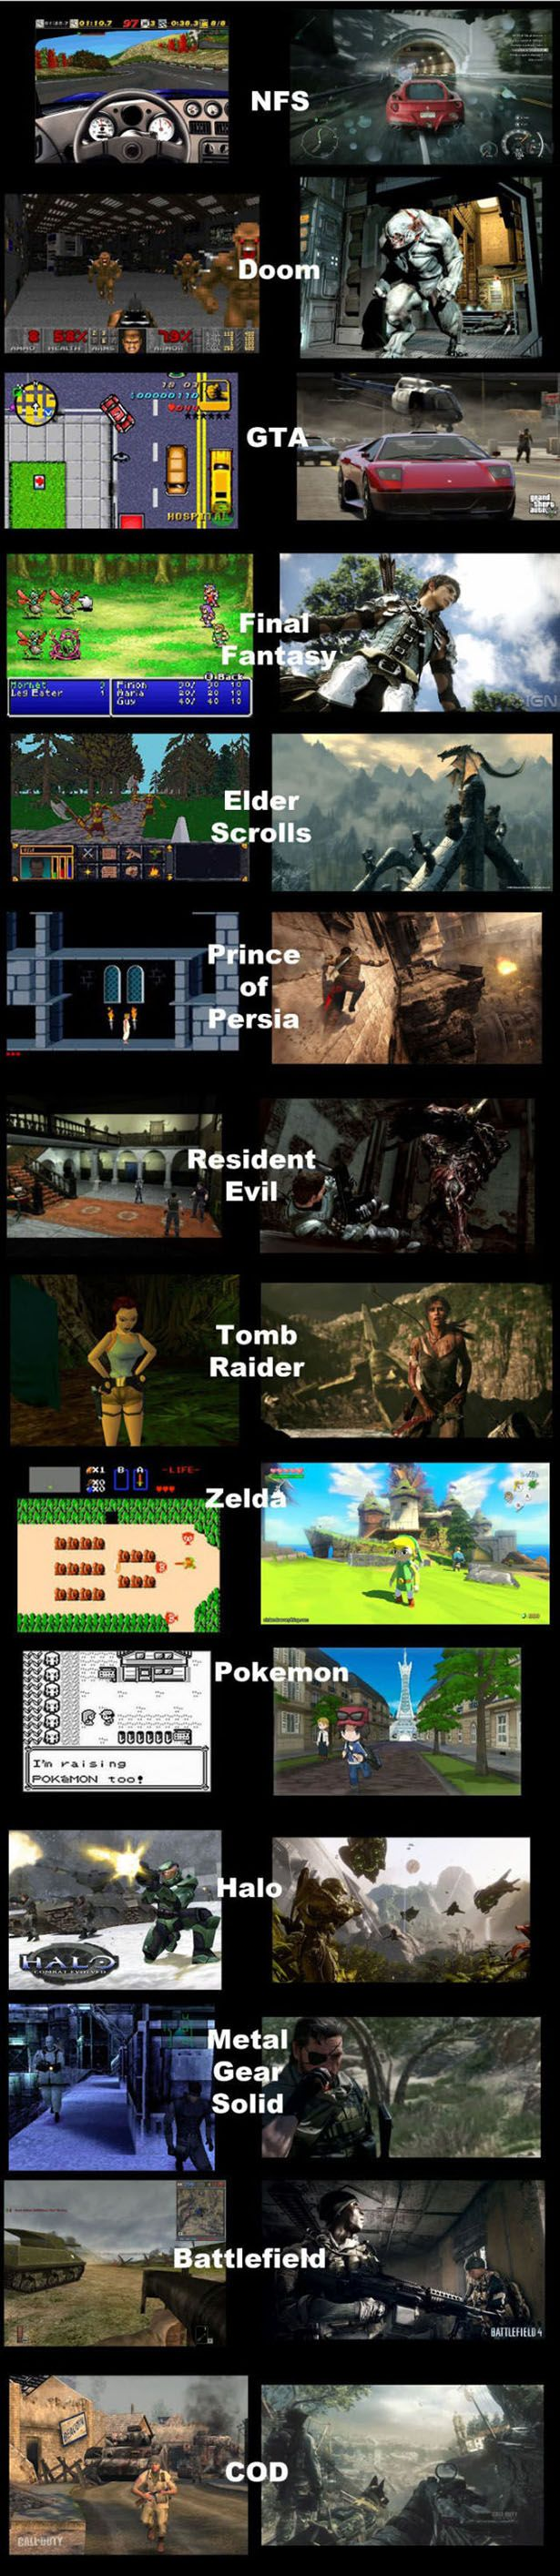 These Pictures Are for Video Gamers Only (39 pics)